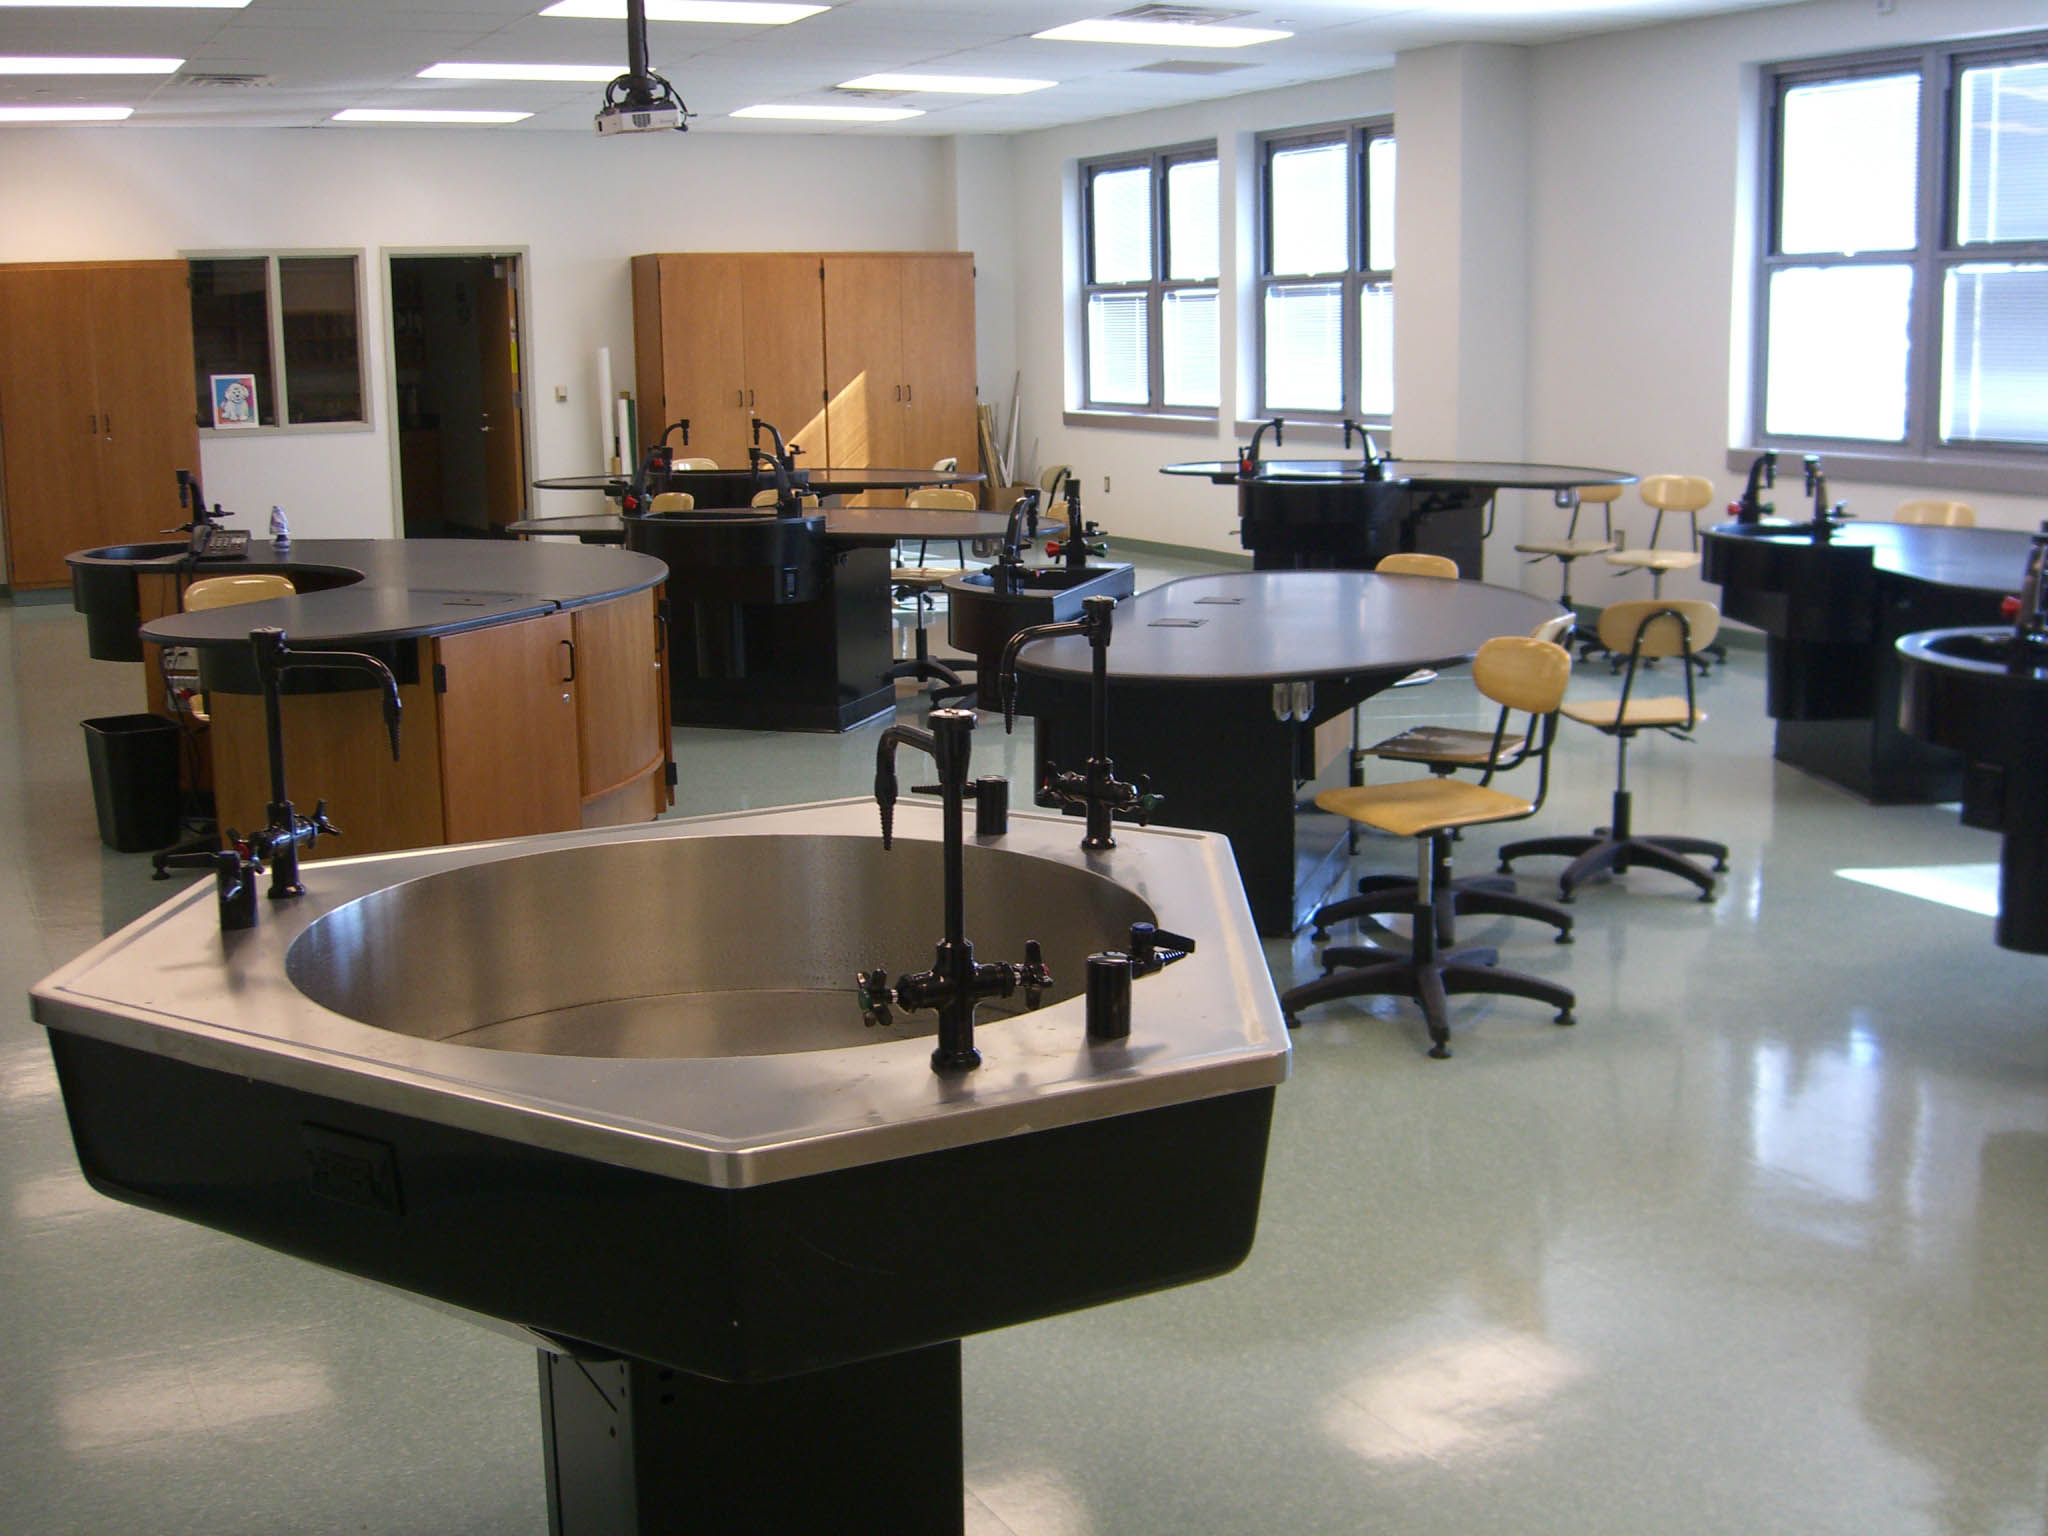 Modern School Furniture Suppliers ~ File uchssciencelab byluiginovi g wikimedia commons